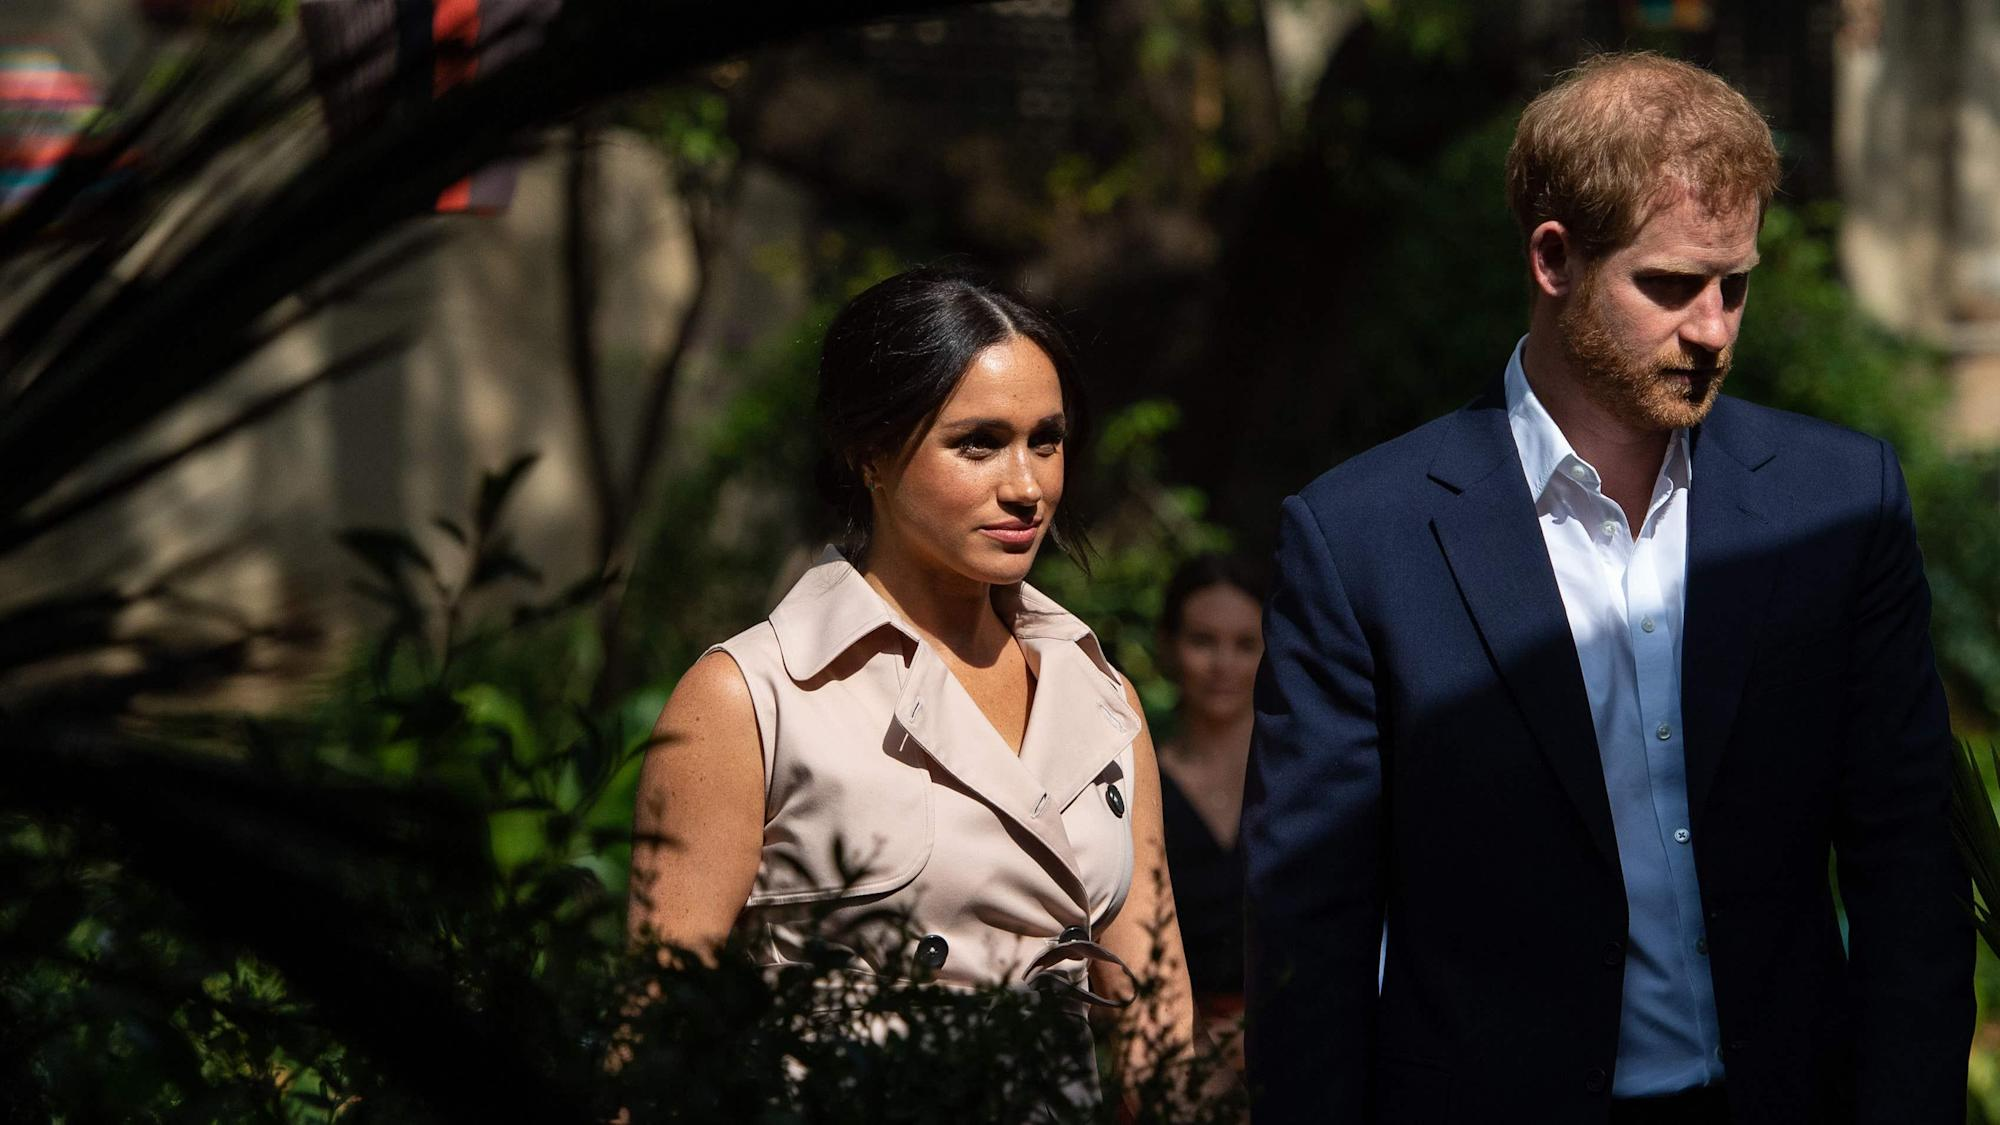 Pressure builds on palace to respond to racism claims made by Harry and Meghan